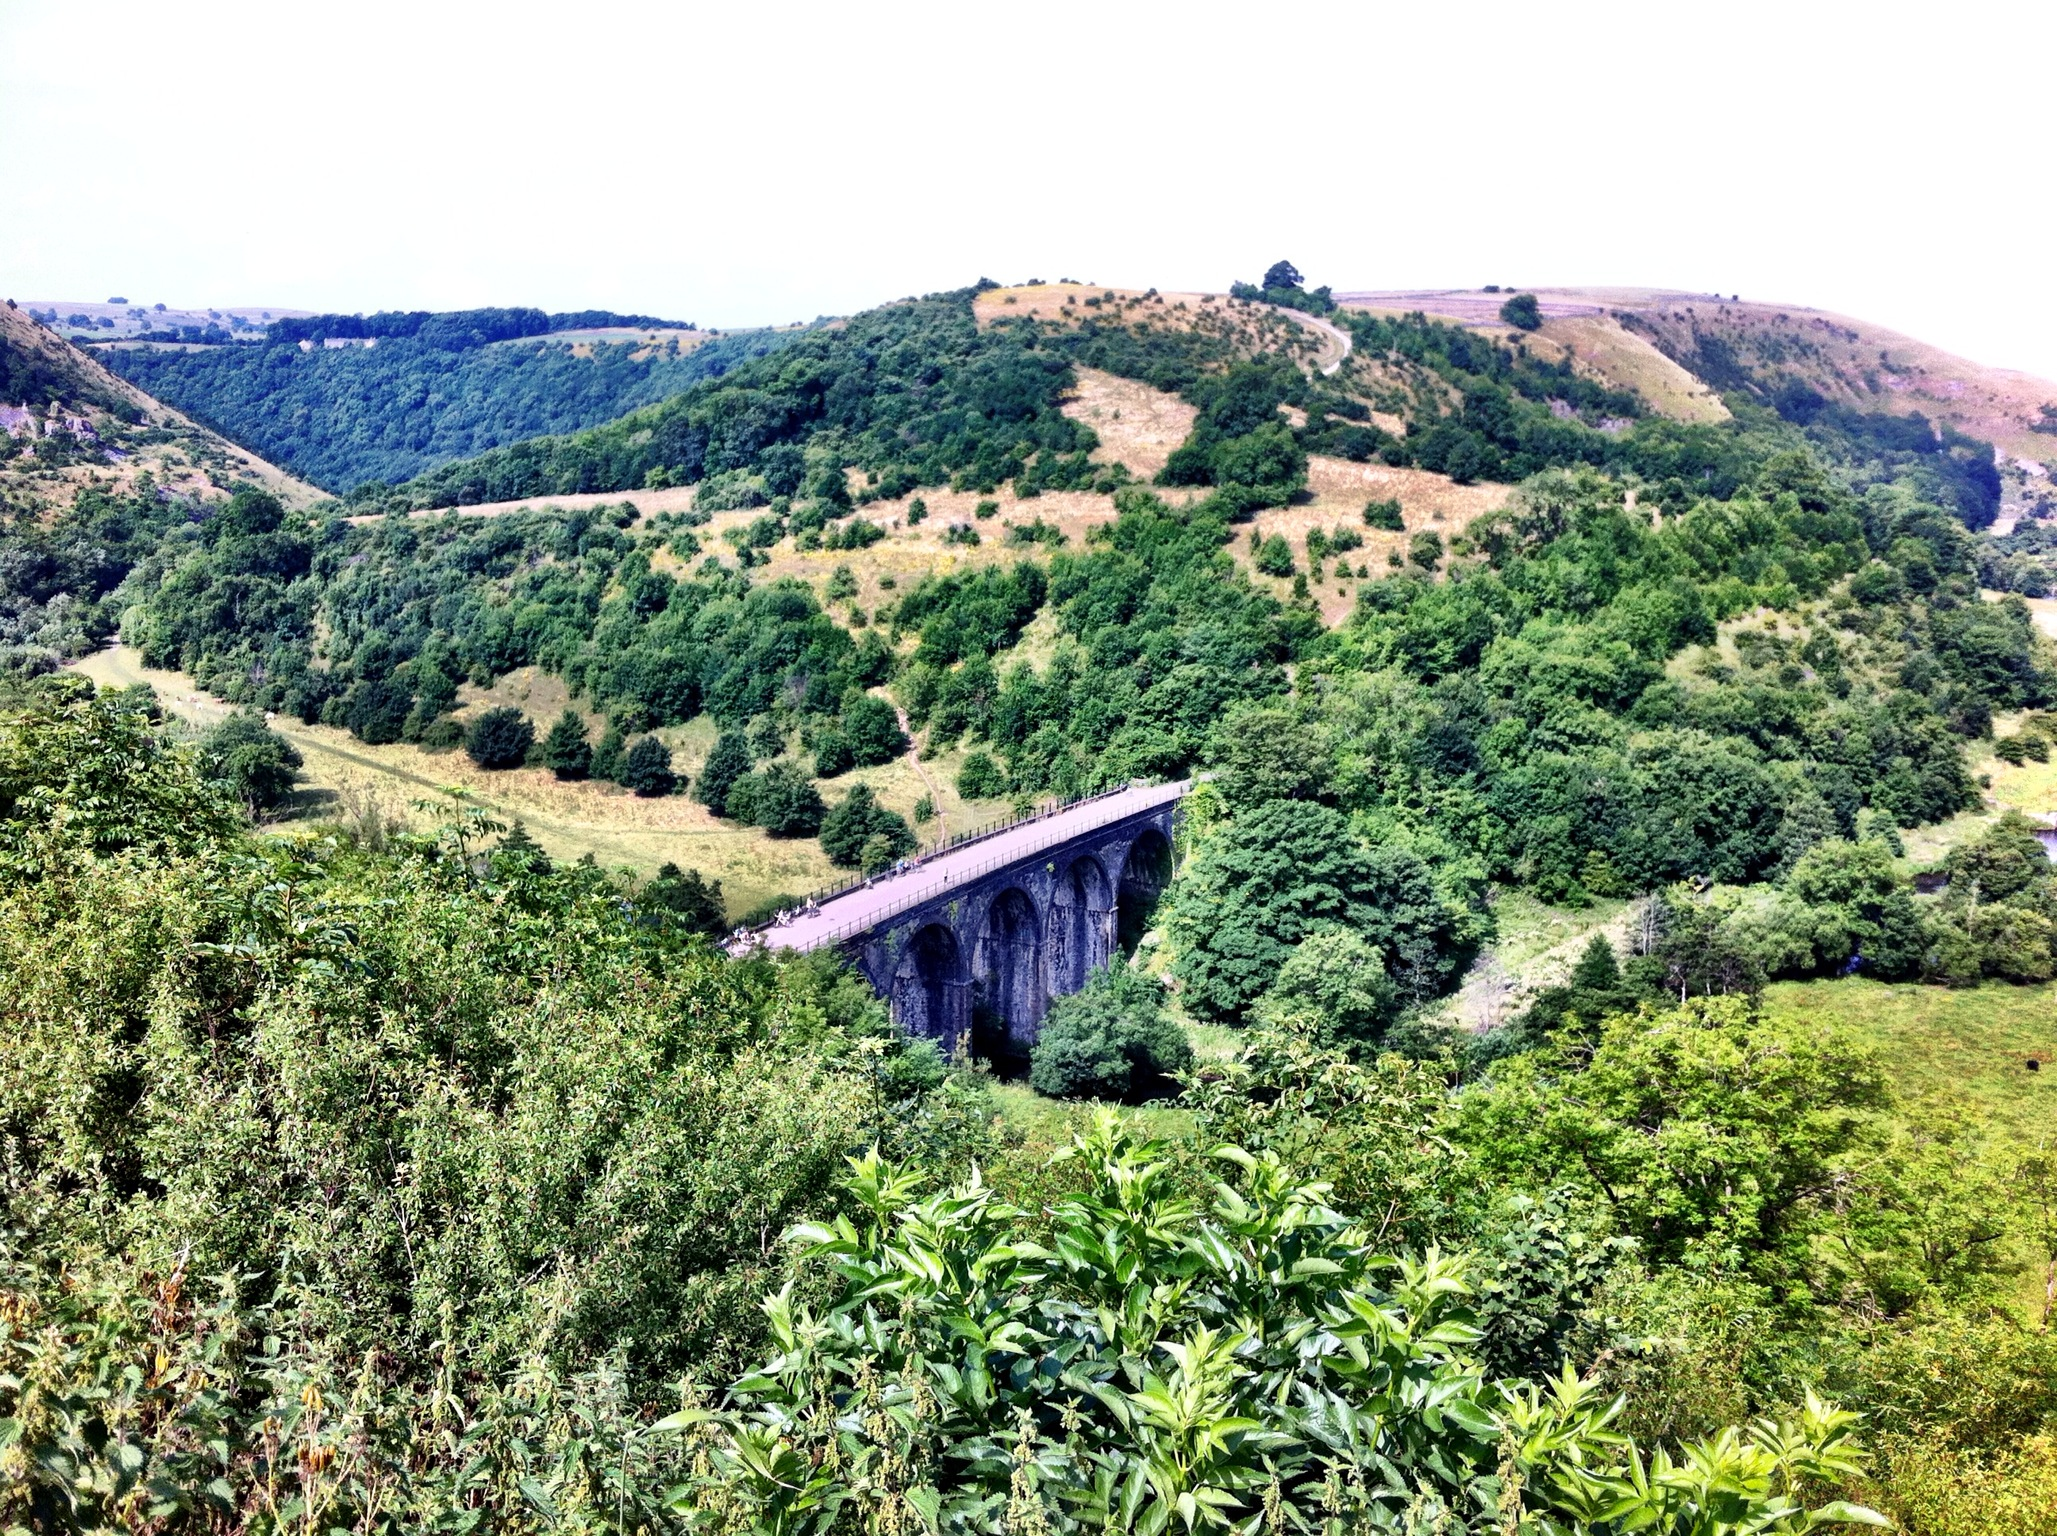 Monsal Head, Monsal Dale, Sheldon, Bakewell and Great Longstone